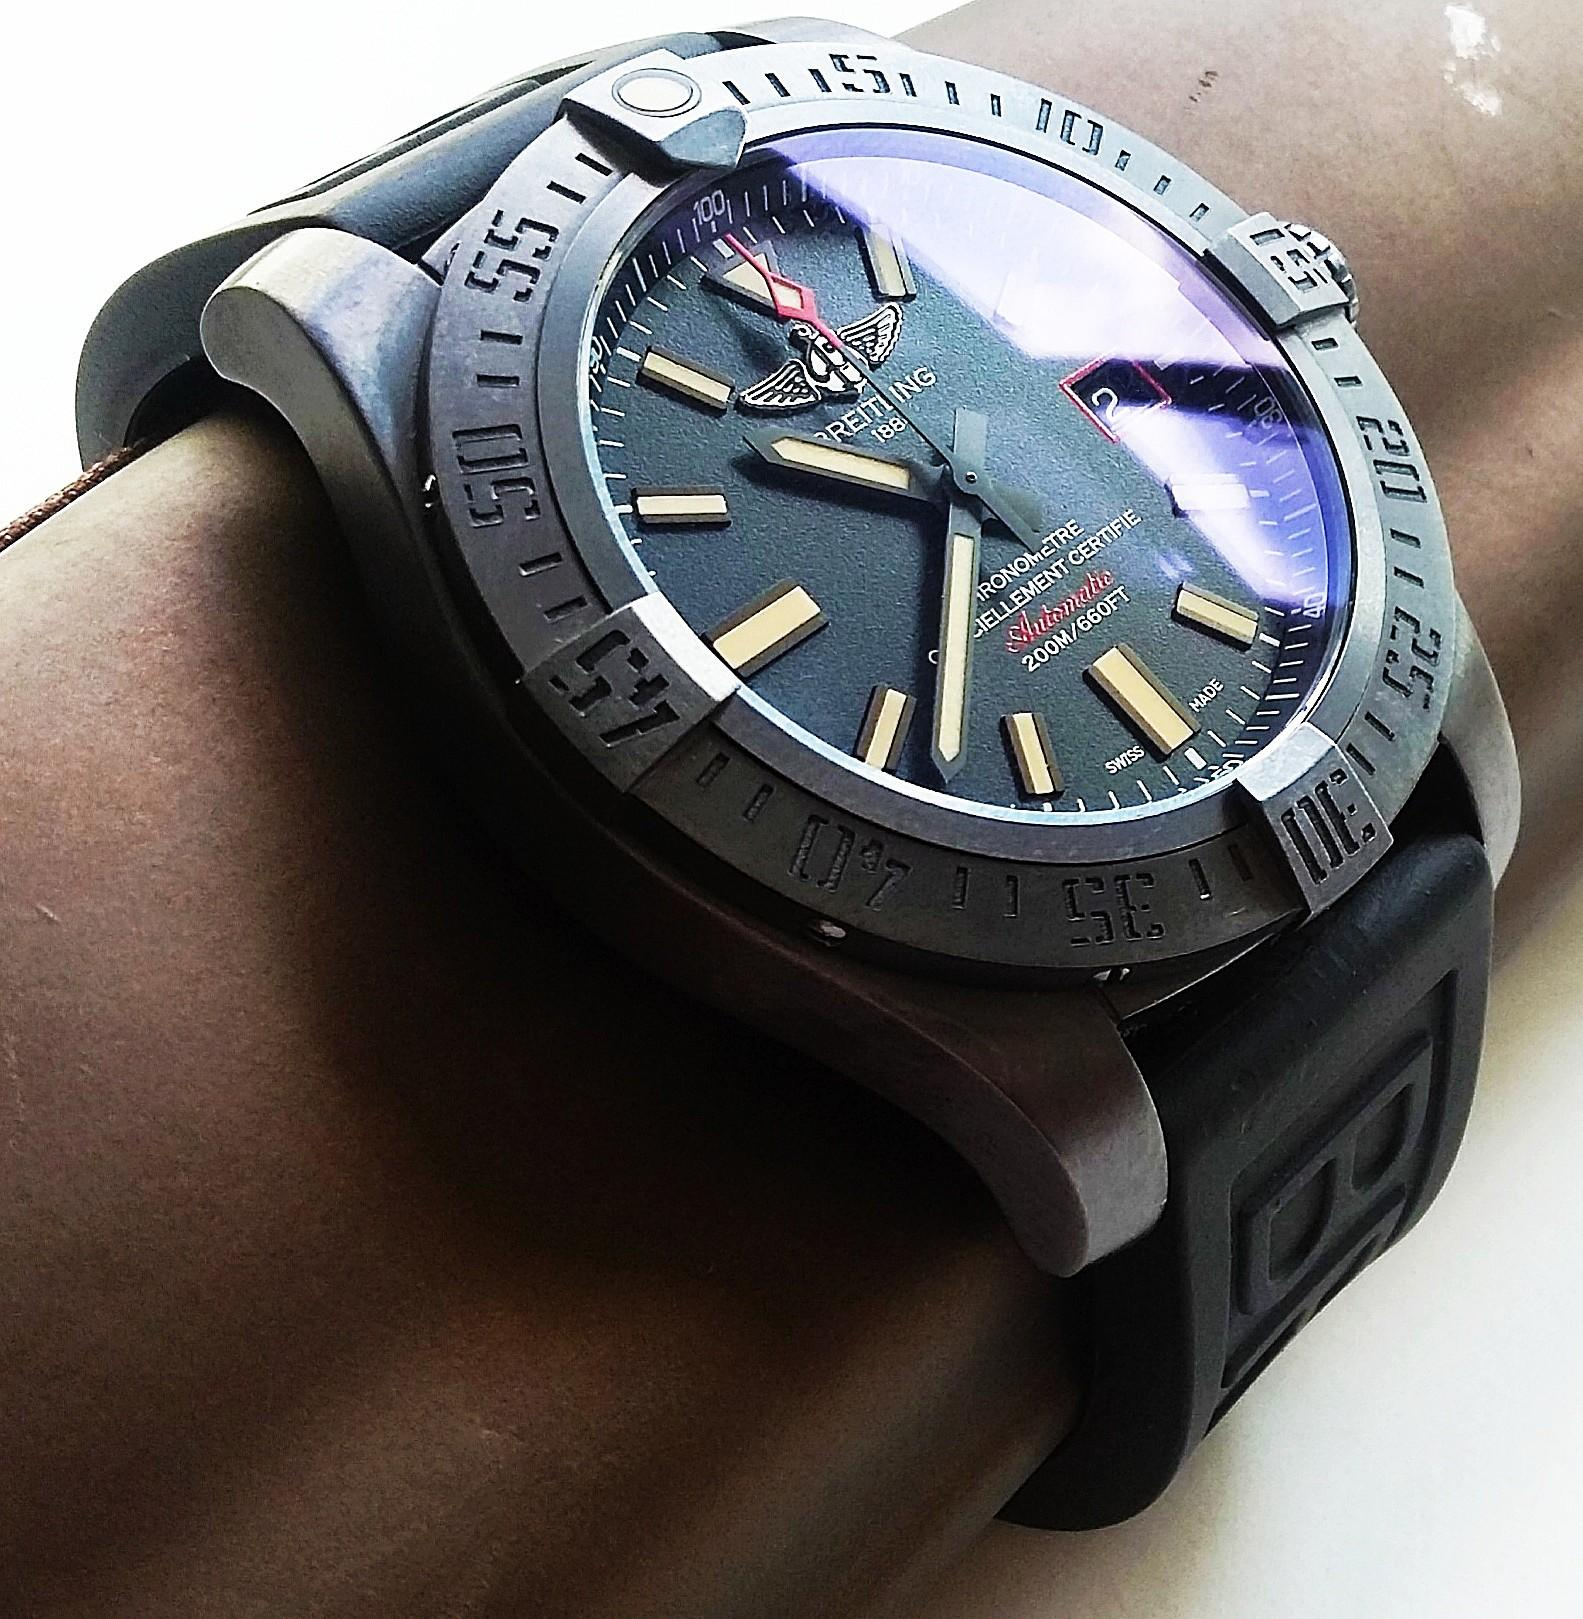 22mm & 24mm BLACK VULCANISED RUBBER WITH STAINLESS STEEL BUCKLE FOR BREITLING AVENGER AND SUPEROCEAN.